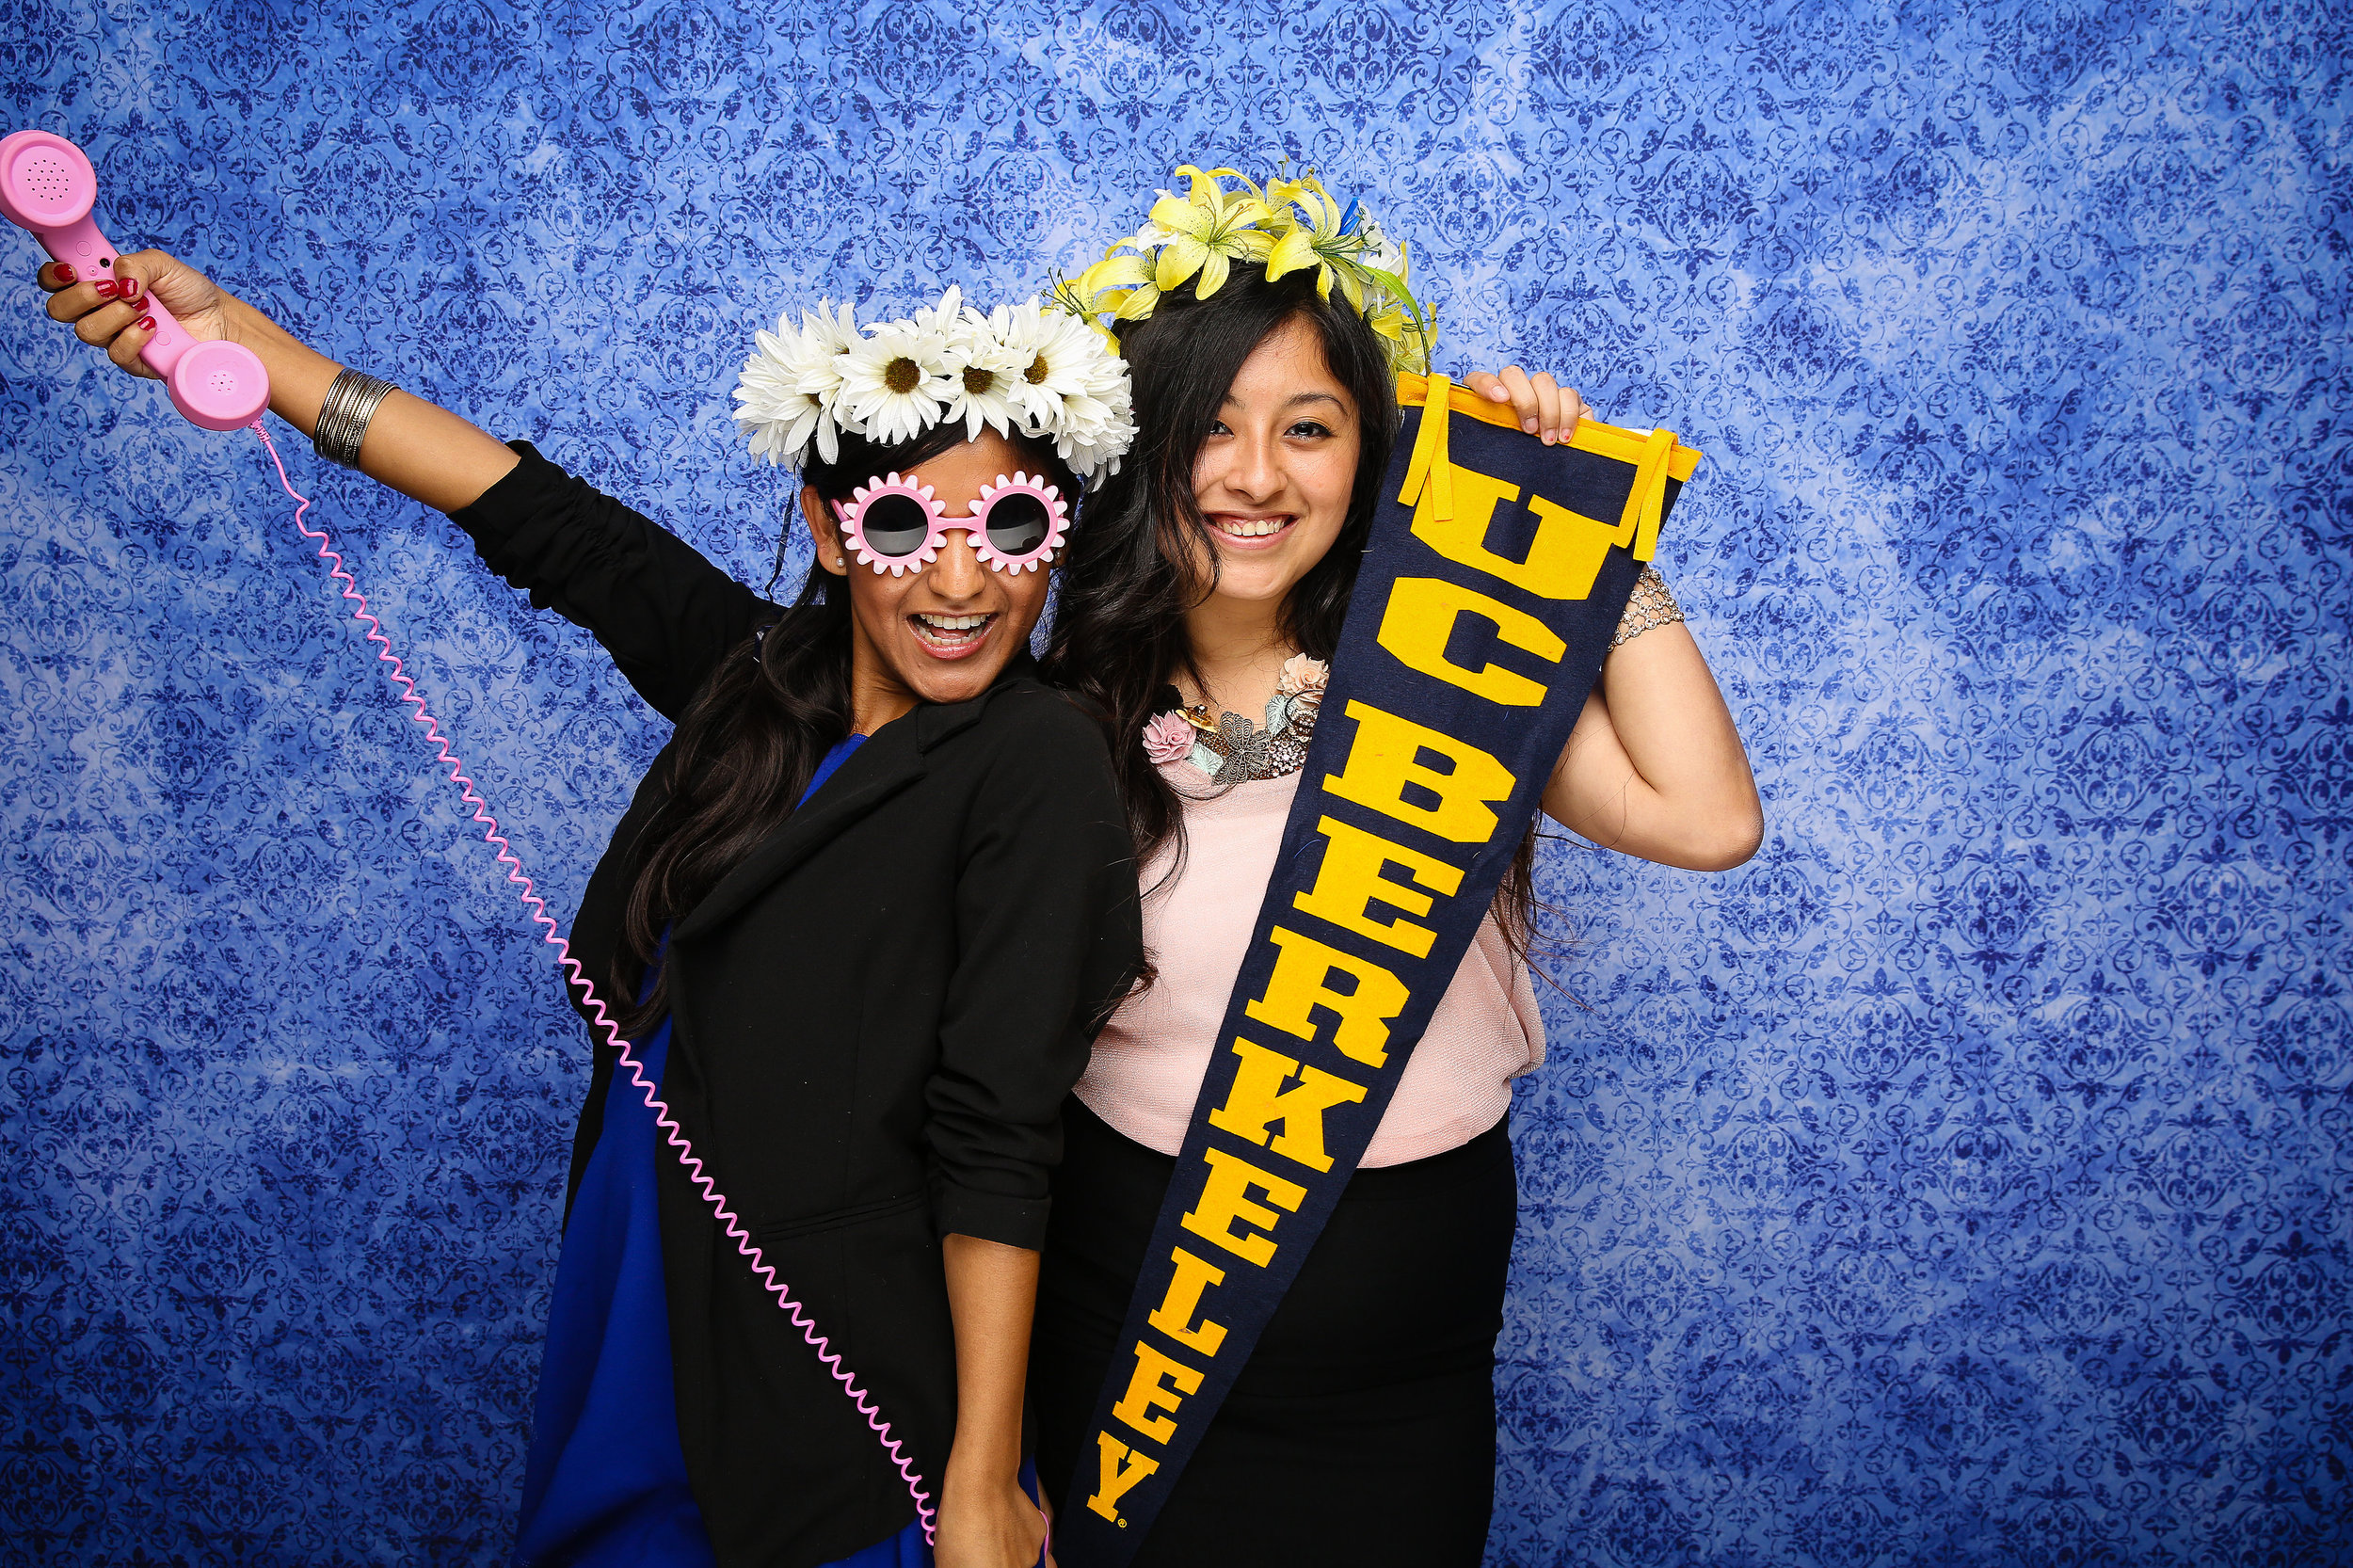 cal photo booth